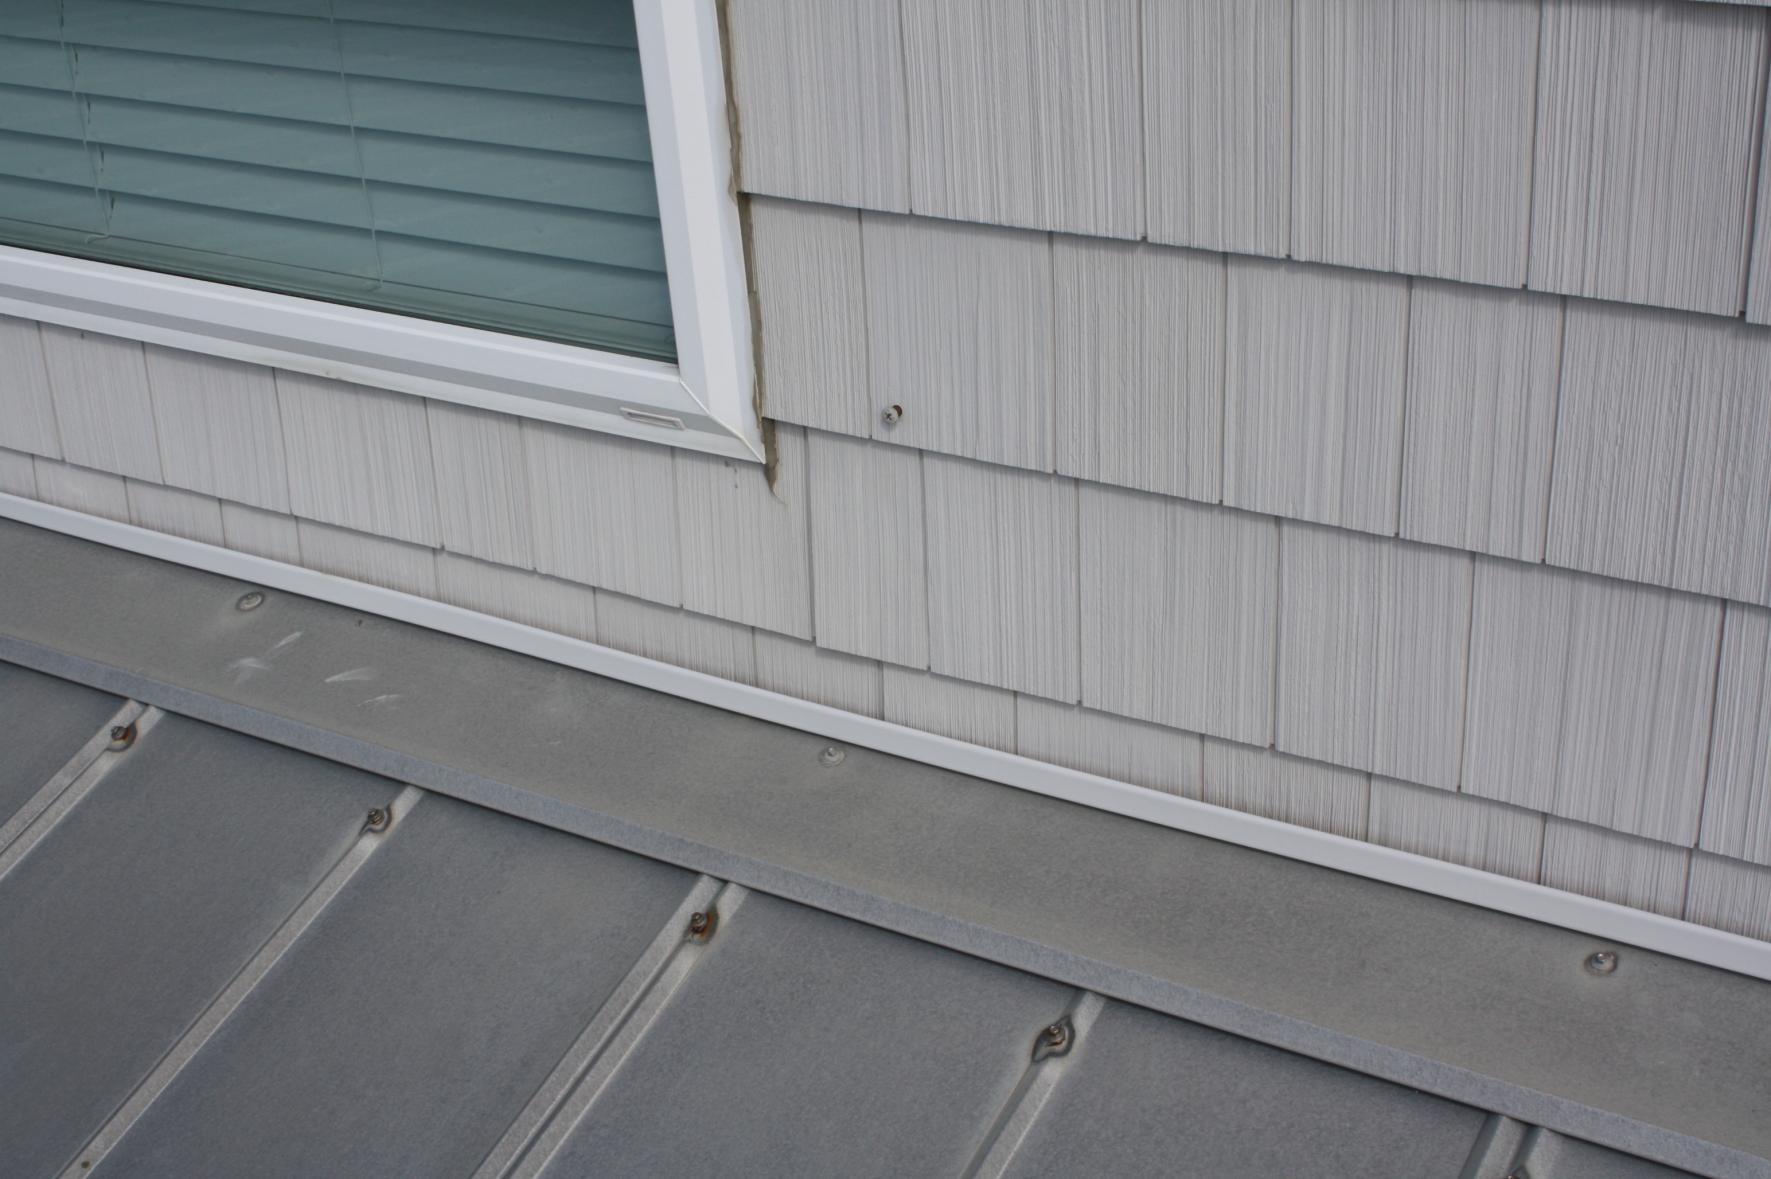 Screws in 5V tin roof at beach-img_2964.jpg